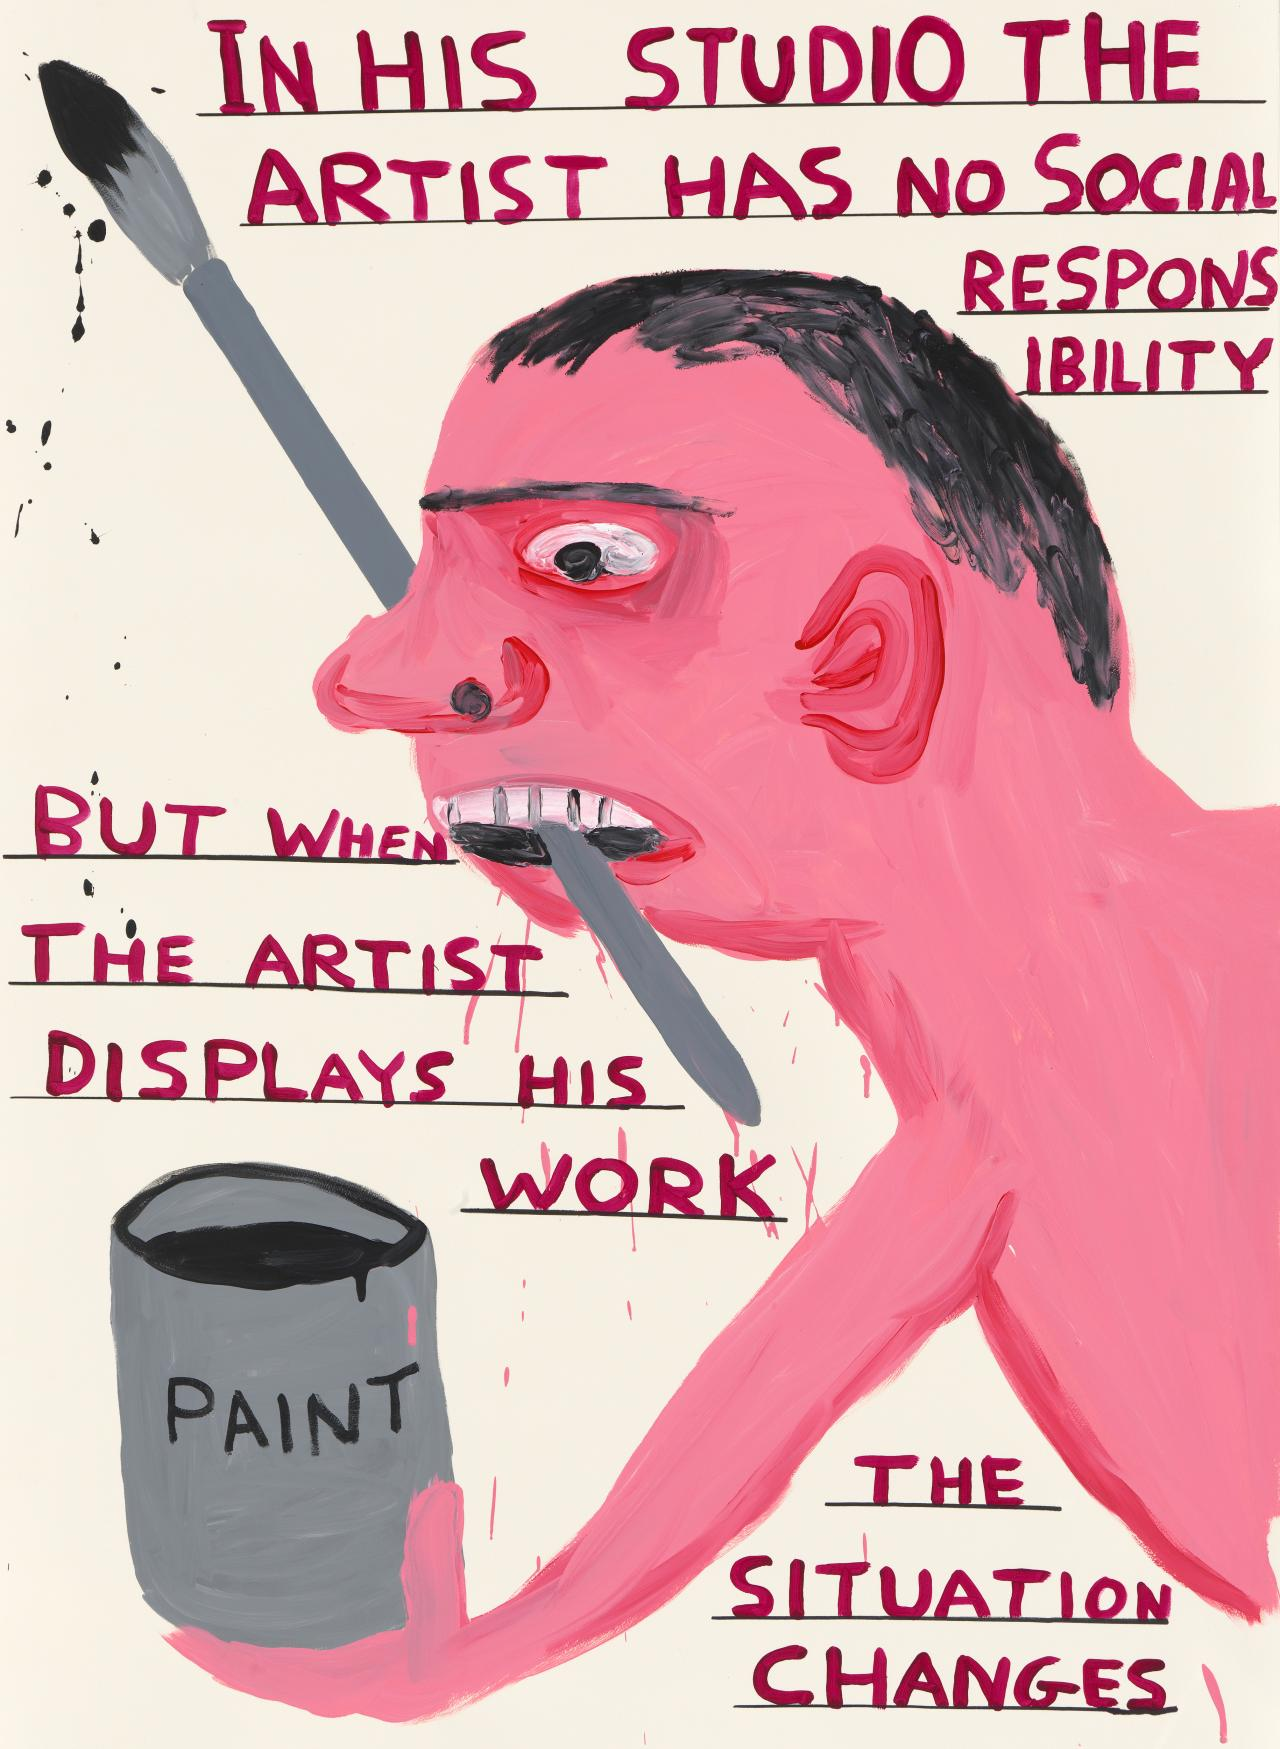 Untitled (In his studio the artist has no social responsibility)